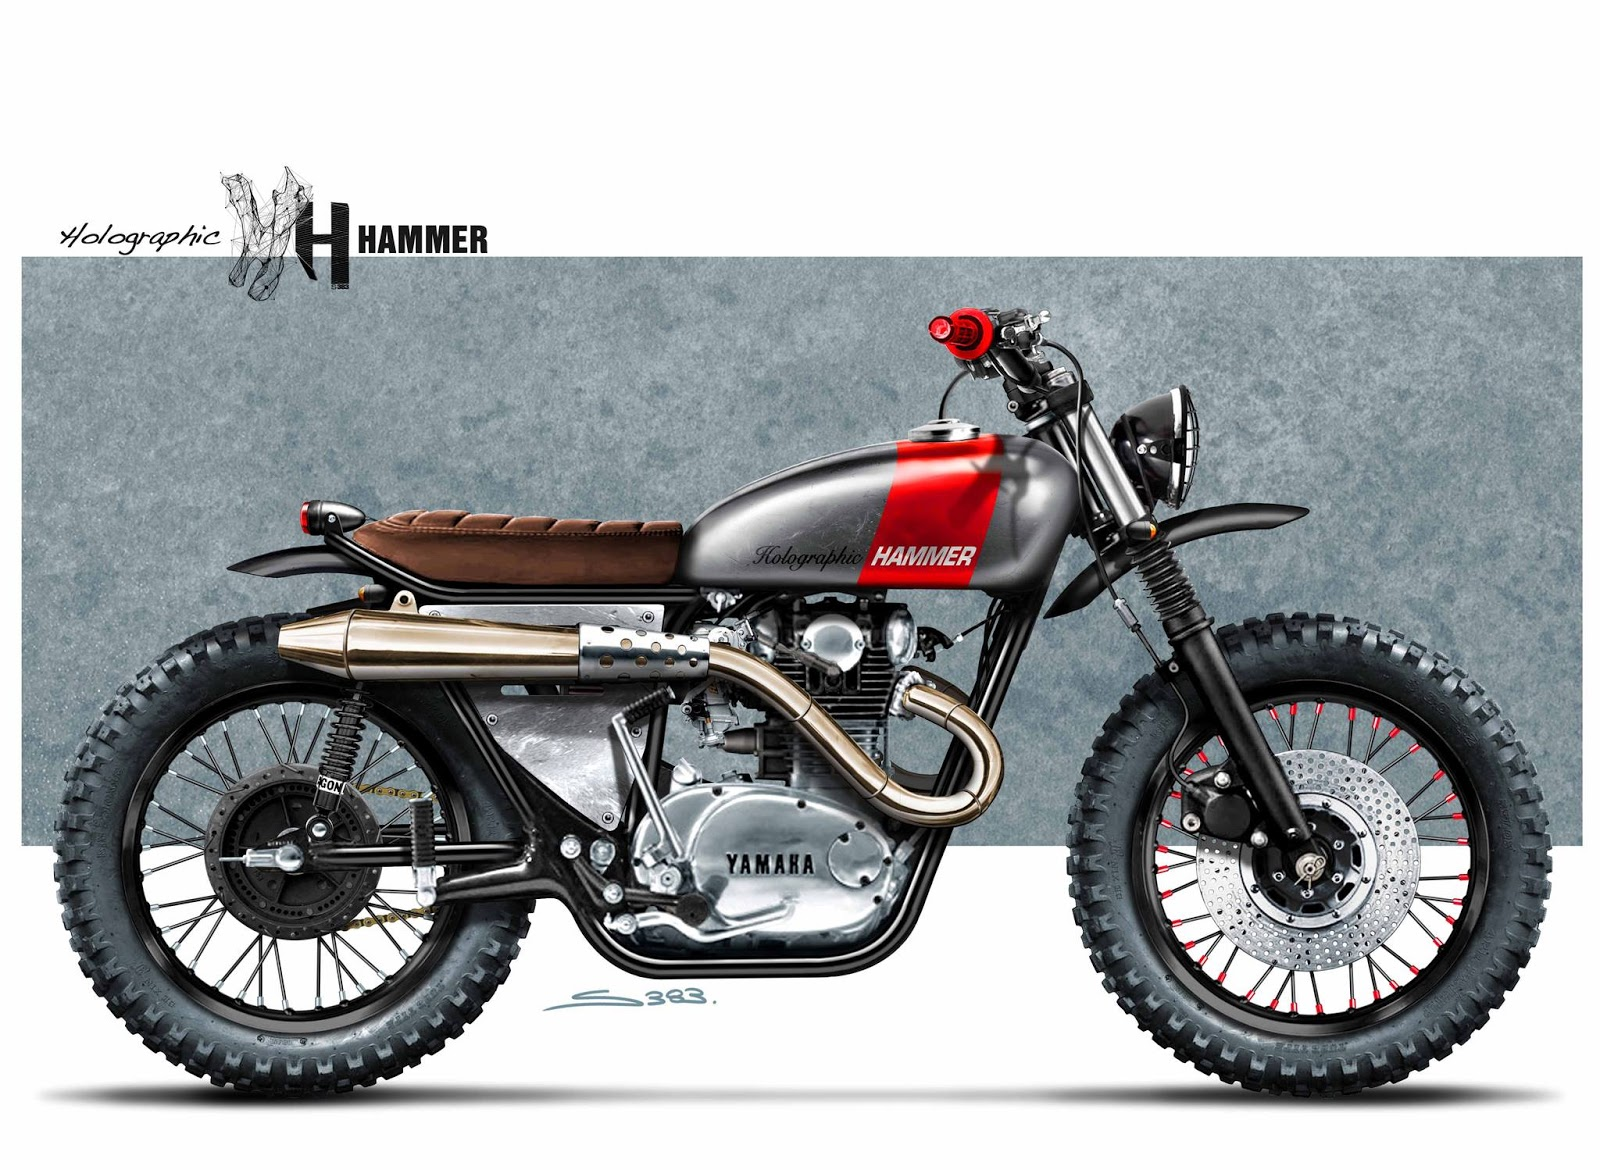 Racing Caf    Caf   Racer Concepts   Yamaha XS 650 Scrambler by